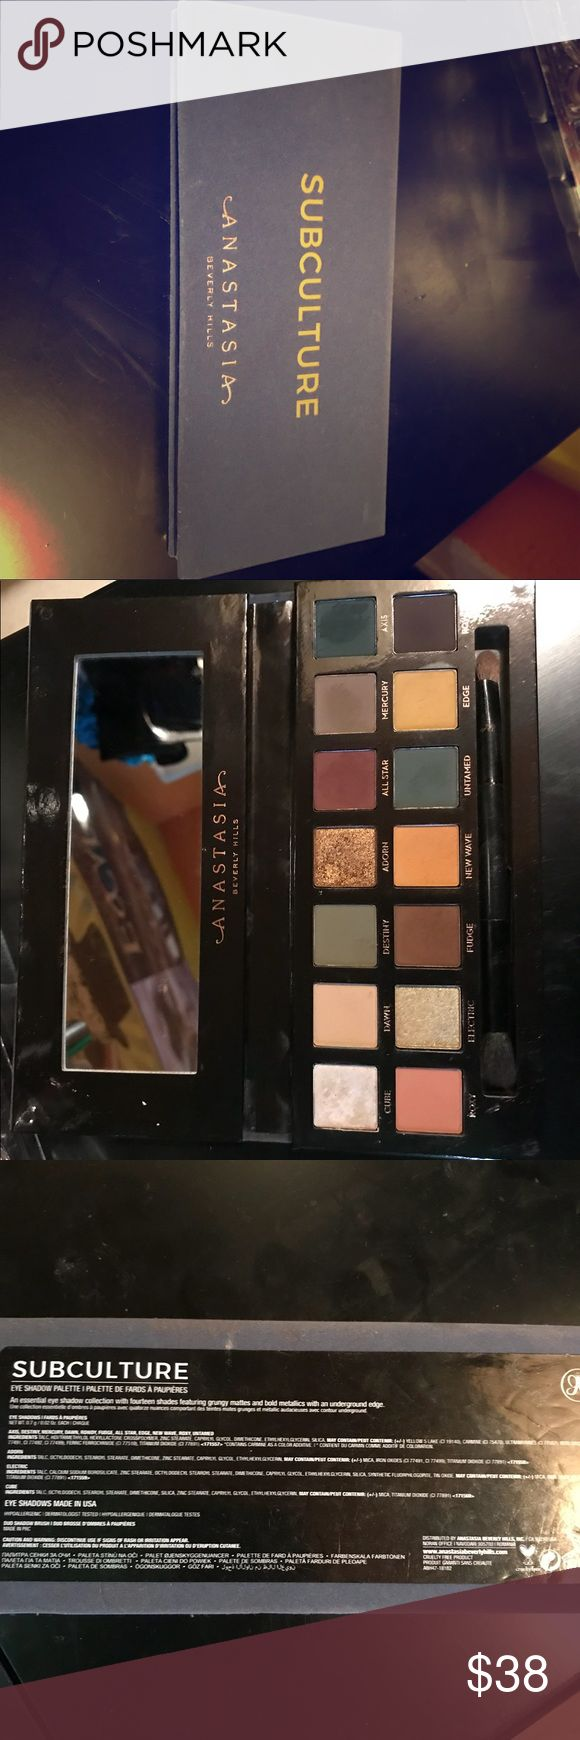 Anastasia Beverly Hills subculture pallete Gently used. Recently dyed my hair ppl and i don't reach for this often. Could use the money so I'm selling. If not I'll just keep it. Price is firm! Still have receipt to prove it's authentic! Bought online the first day it was released! Comes with brush! Anastasia Beverly Hills Makeup Eyeshadow